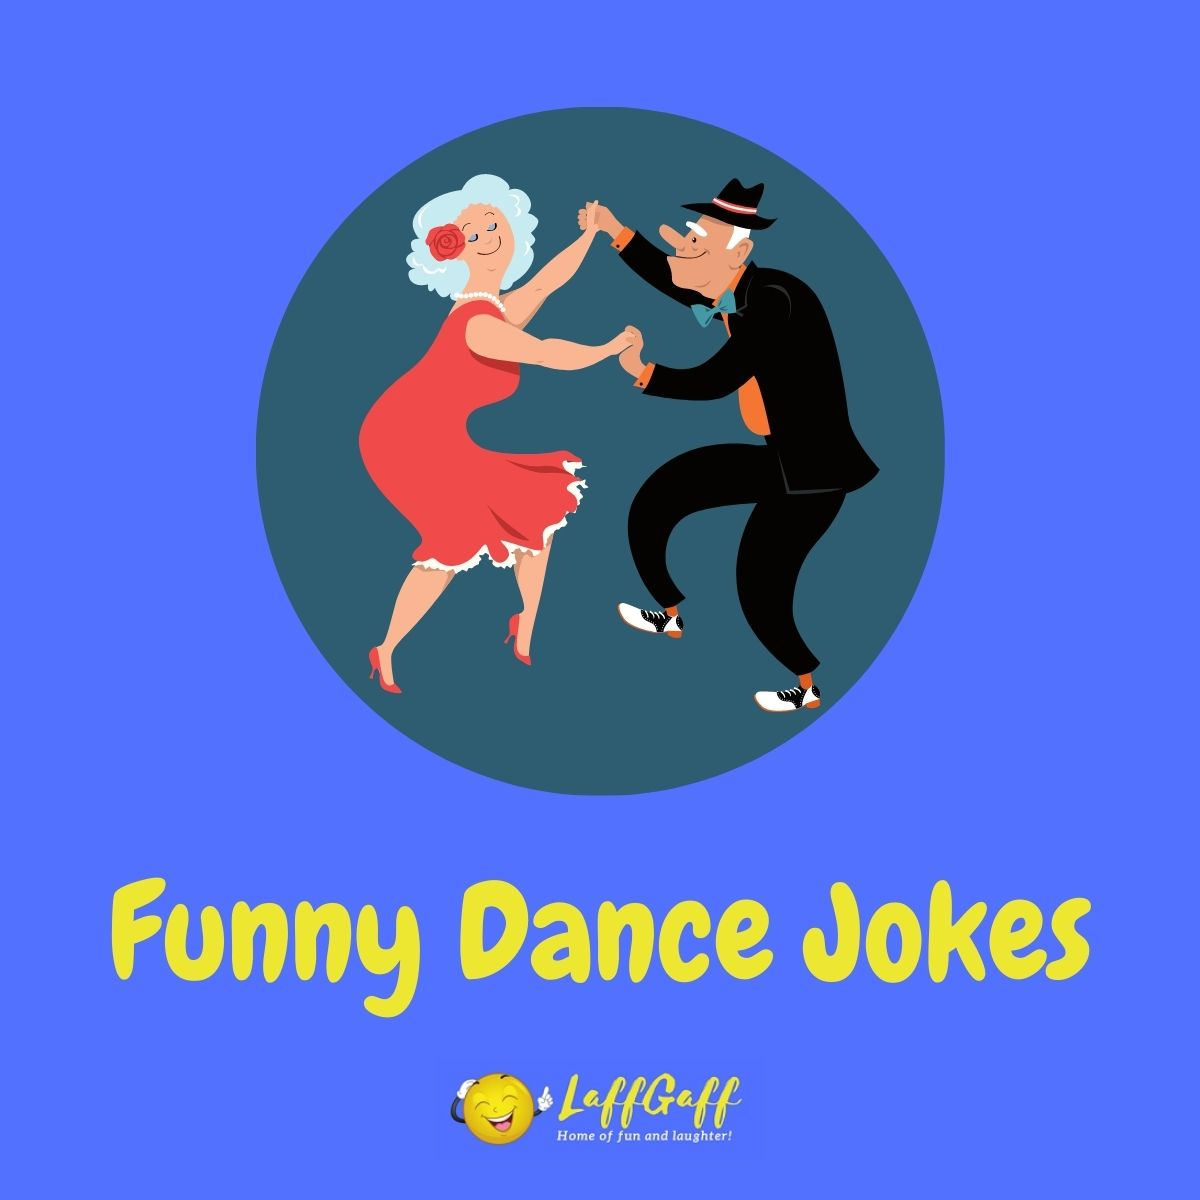 Featured image for a page of funny dancing and dance jokes.